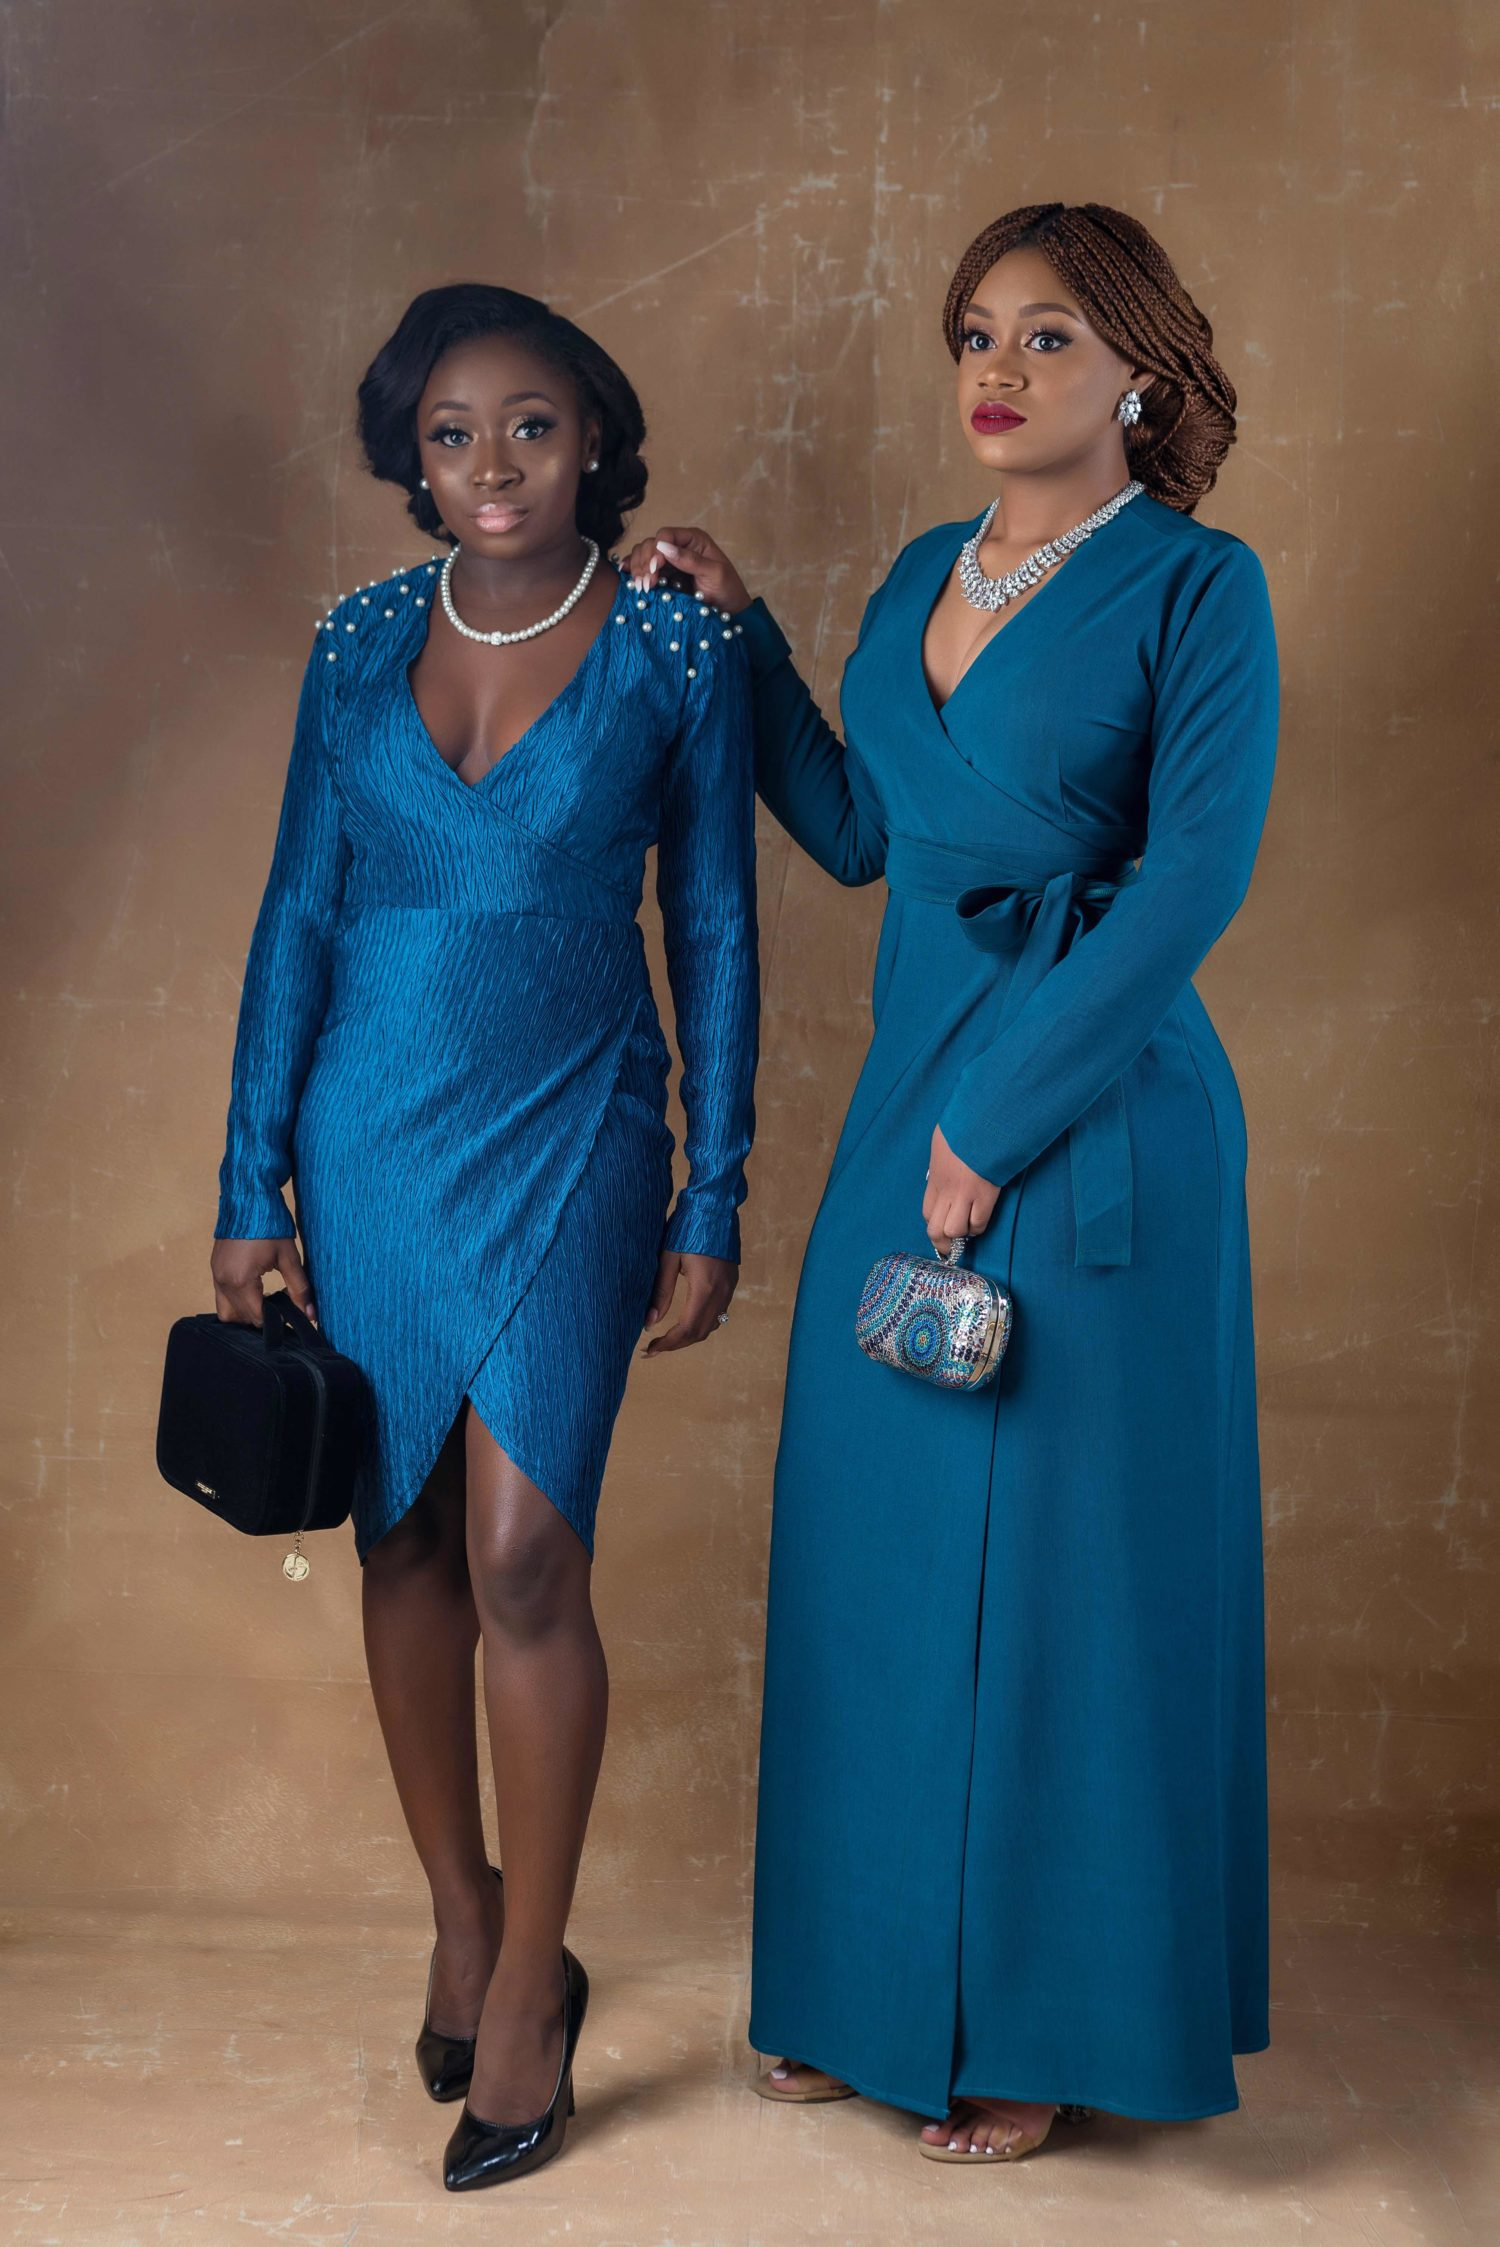 Nigerian Fashion Brand Maxine Arthurs Releases It's Debut Collection